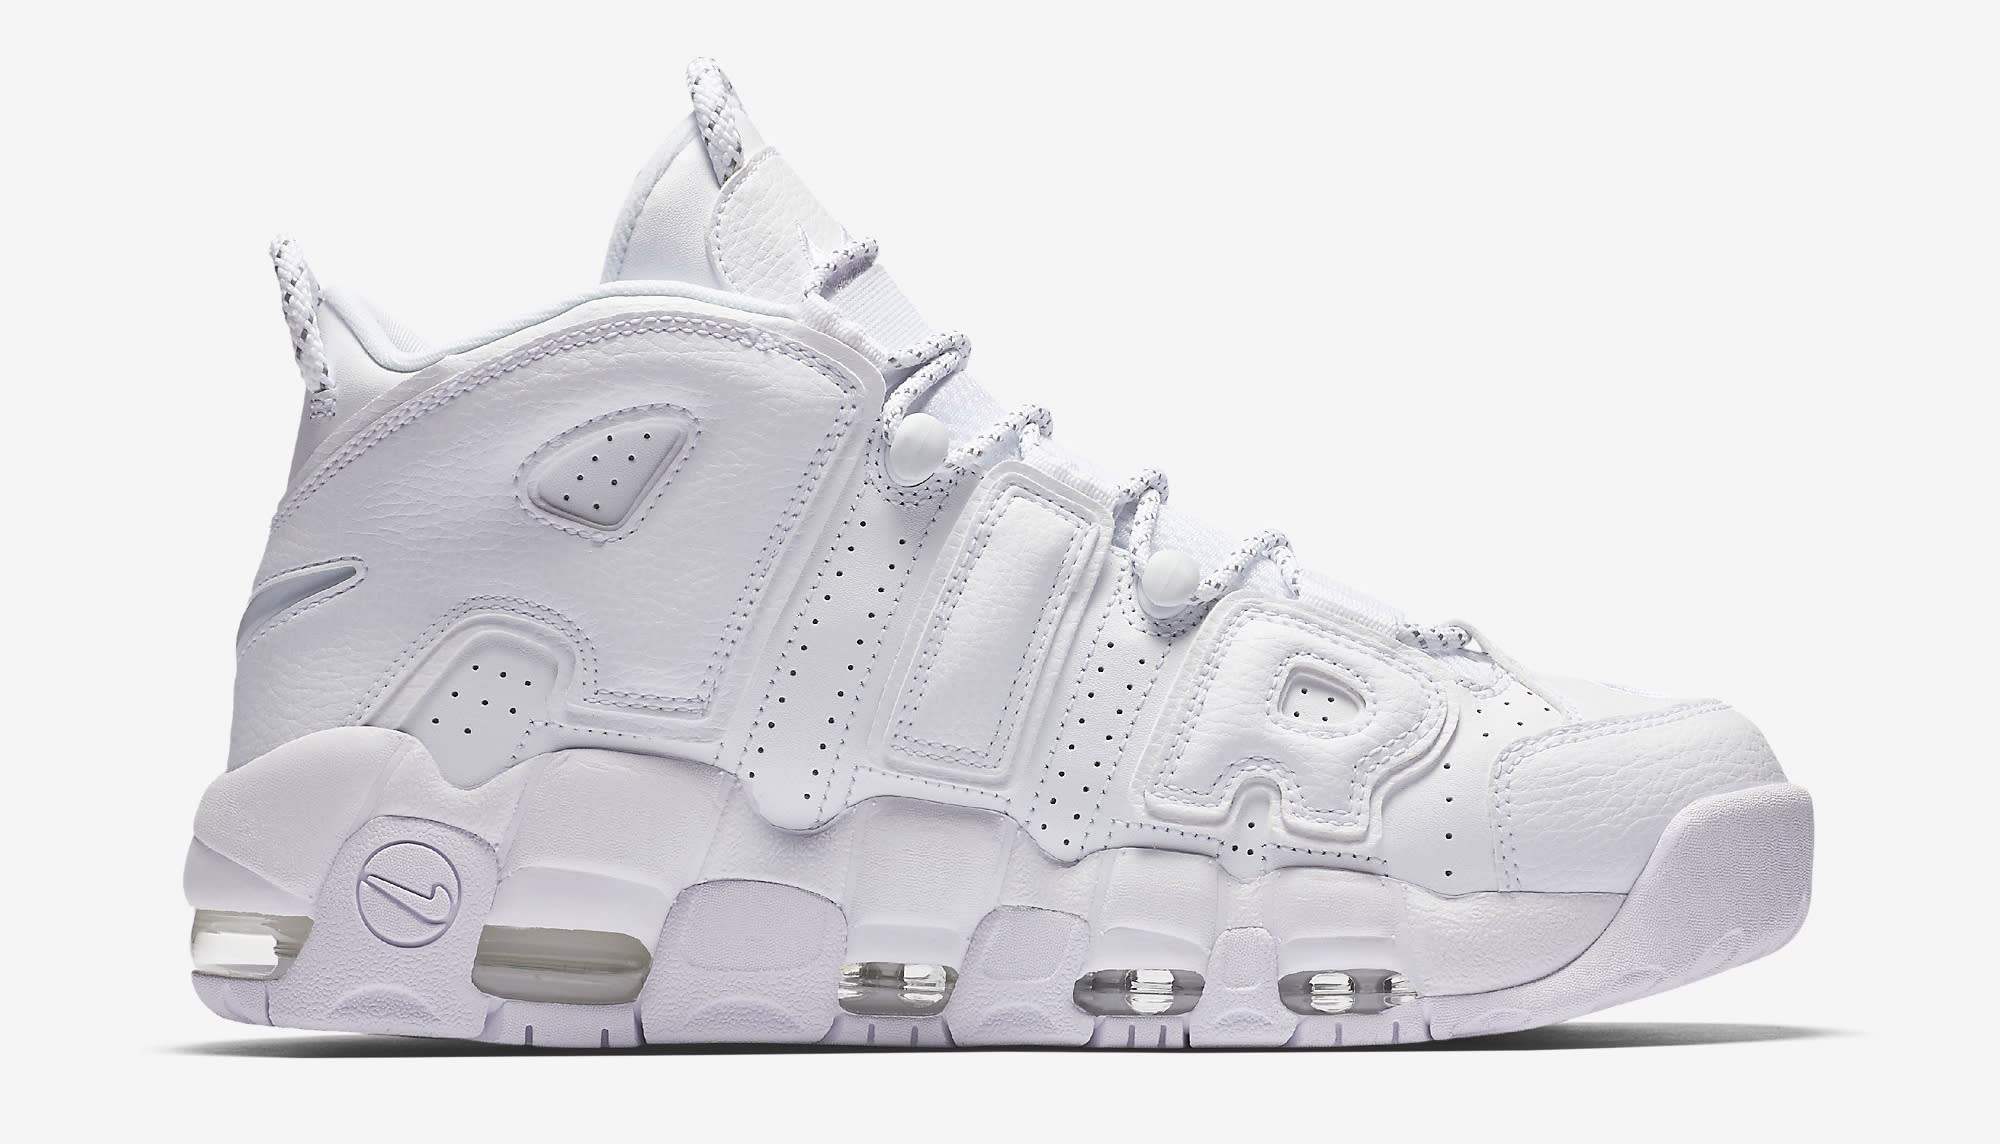 Triple White Nike Air More Uptempo 921948-100 Medial